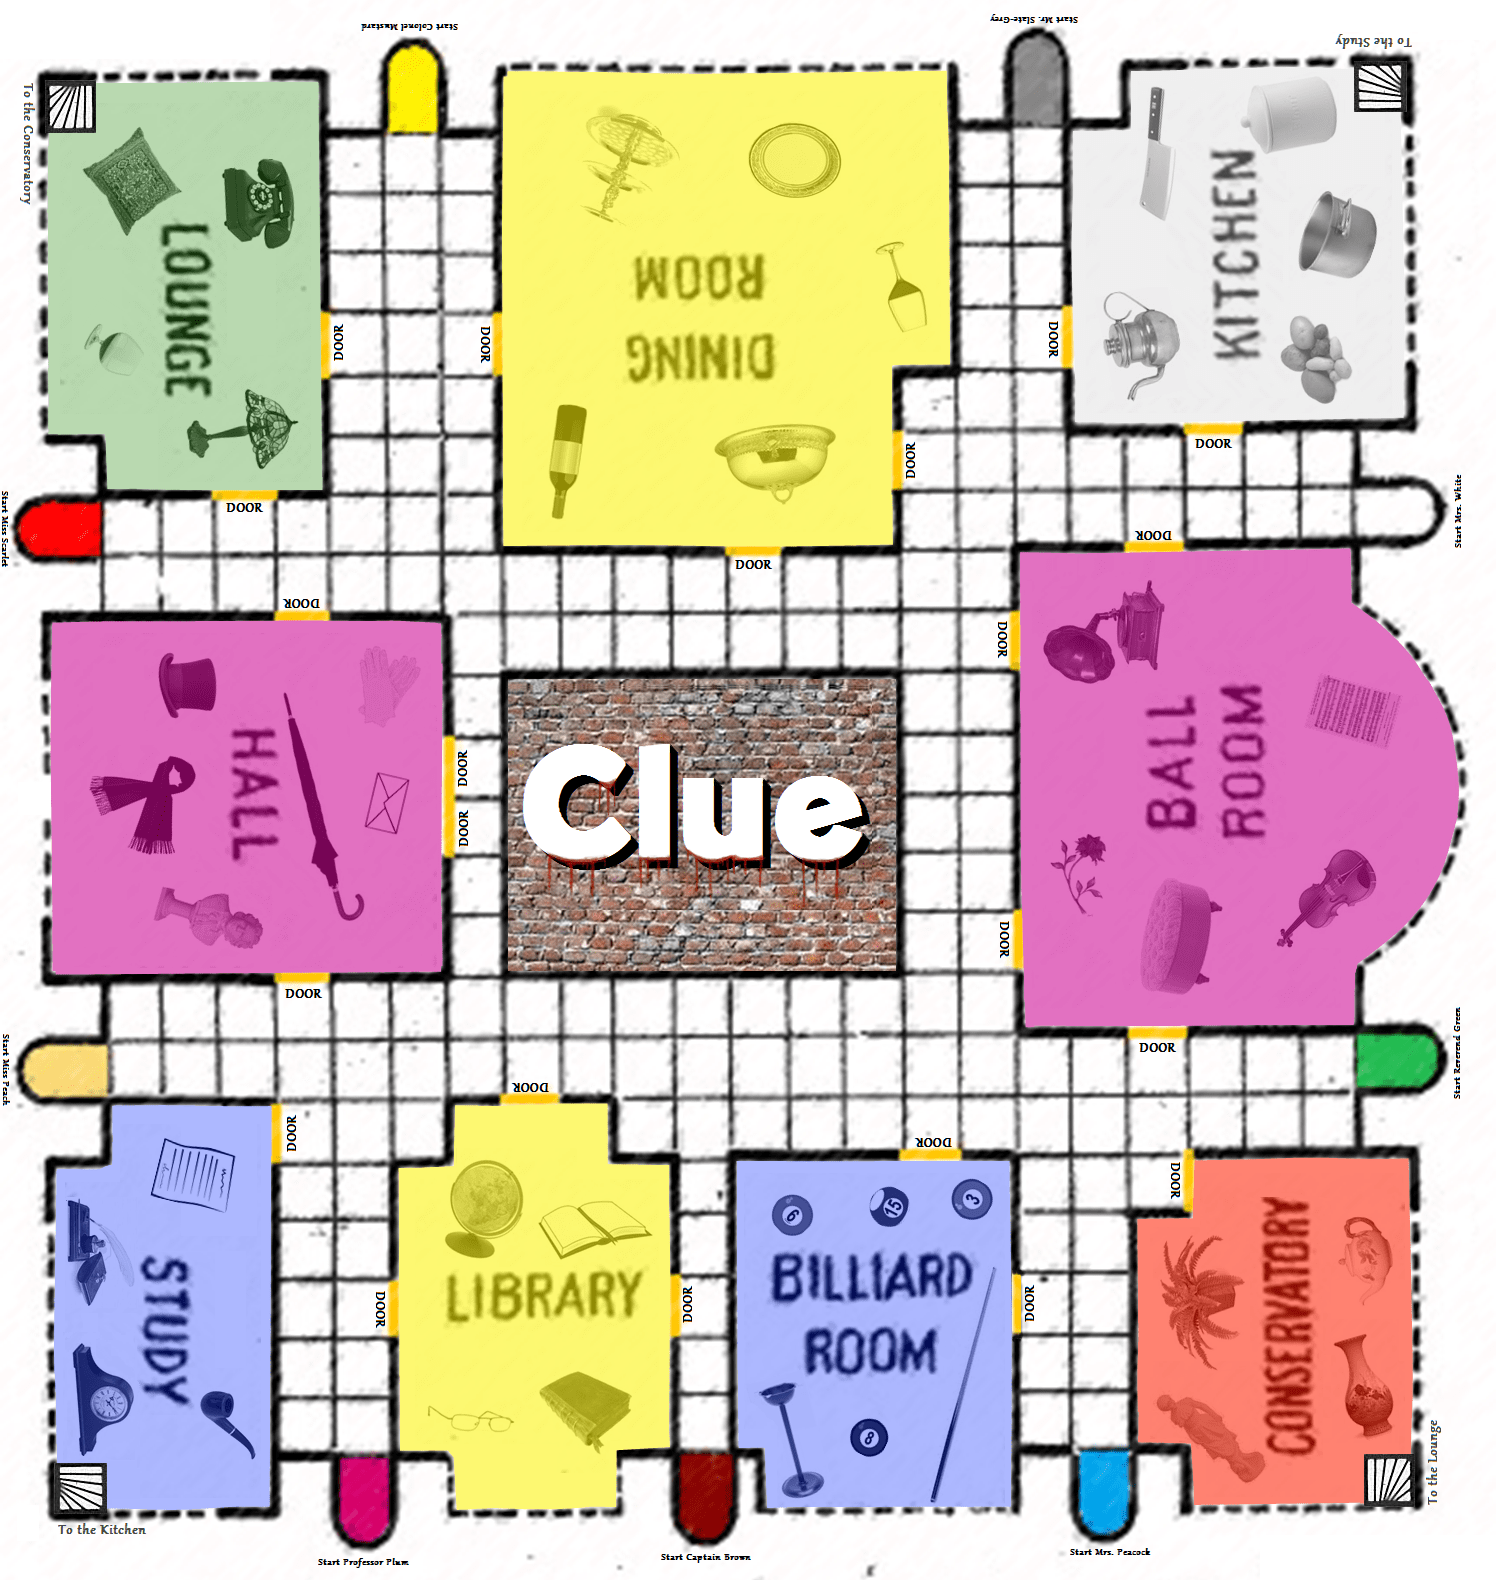 photo about Printable Clue Board Game Cards known as 5 Excellent Photos of Printable Clue Playing cards Clue Board Activity Incredibly hot